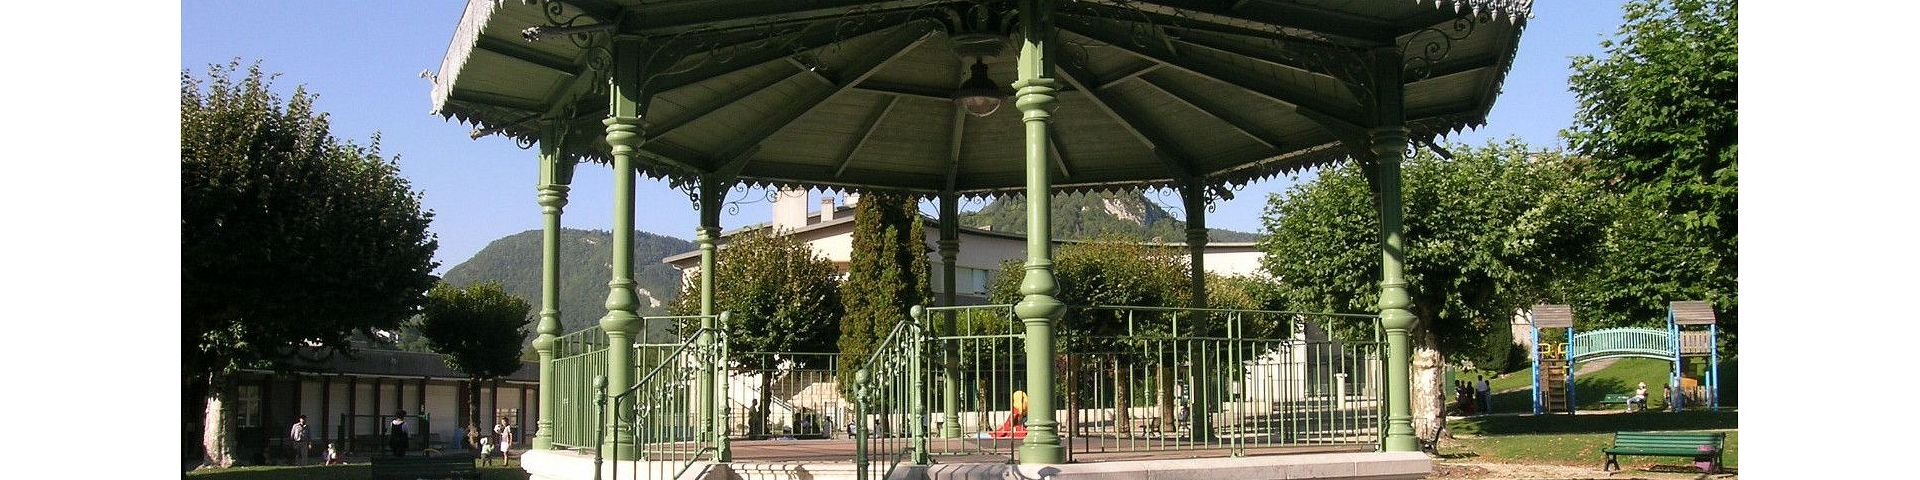 Saint-Claude - Kiosque du square (39)